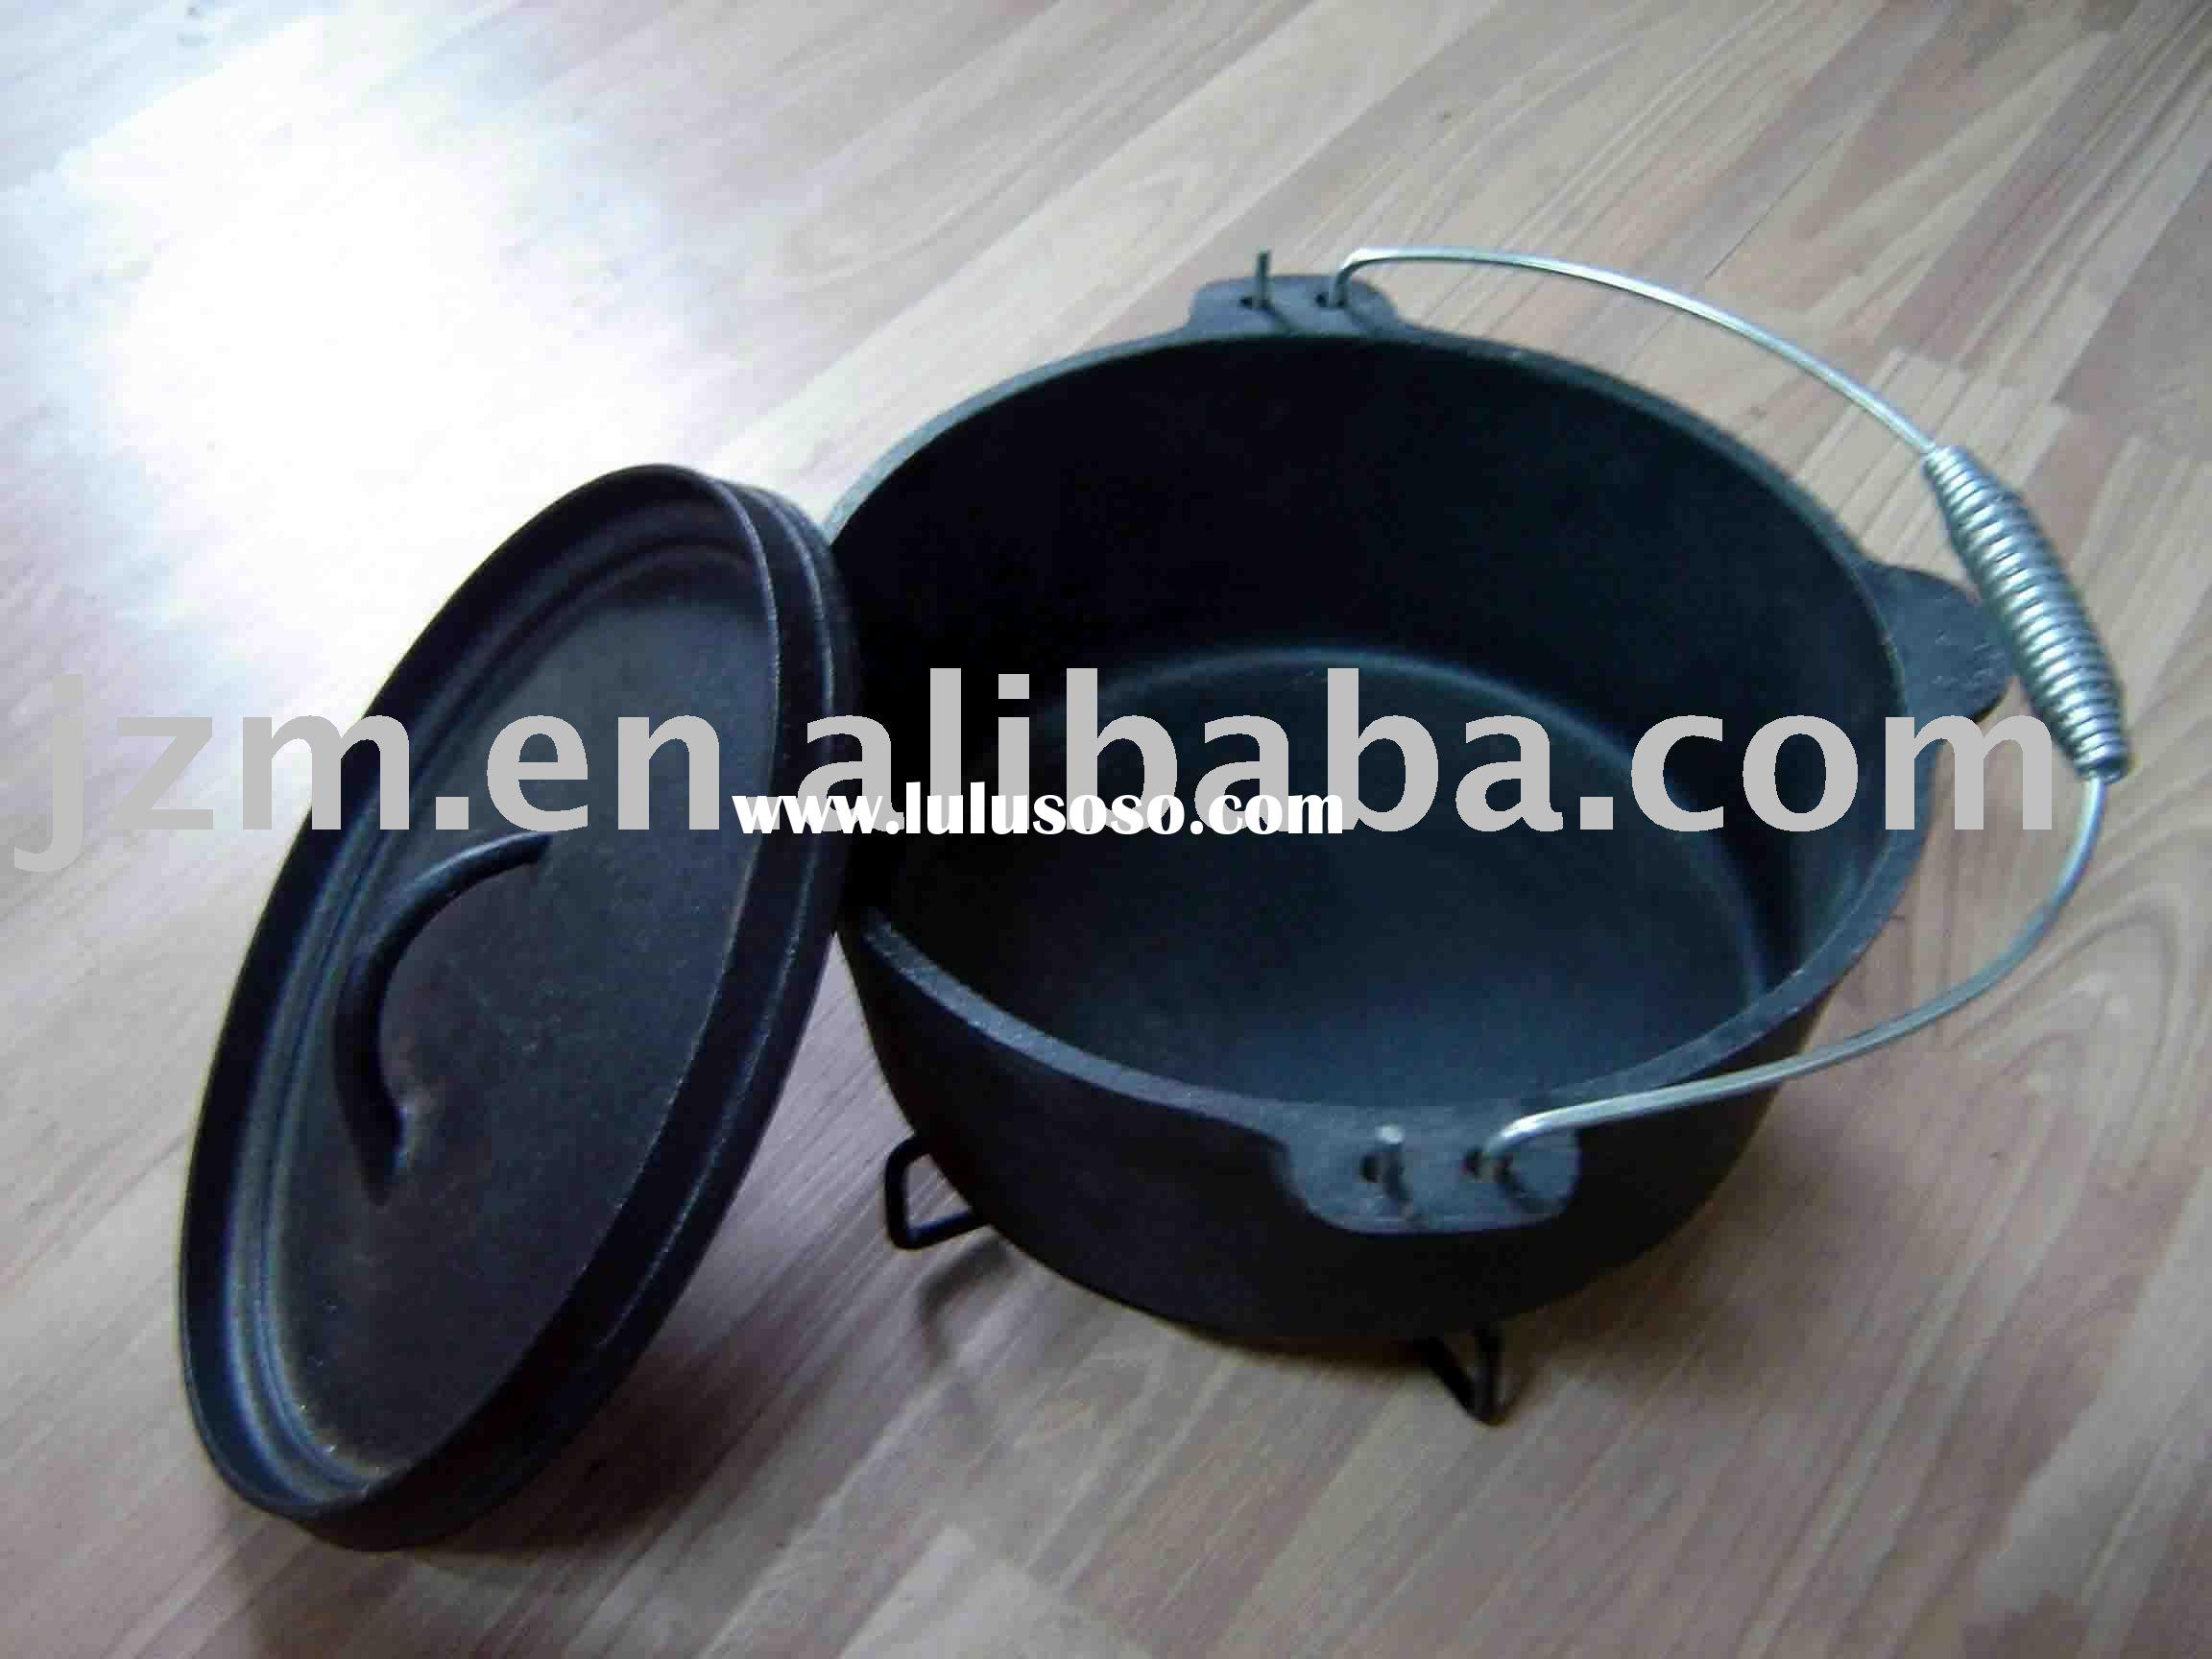 cast iron dutch oven, cast iron dutch oven Manufacturers in ...